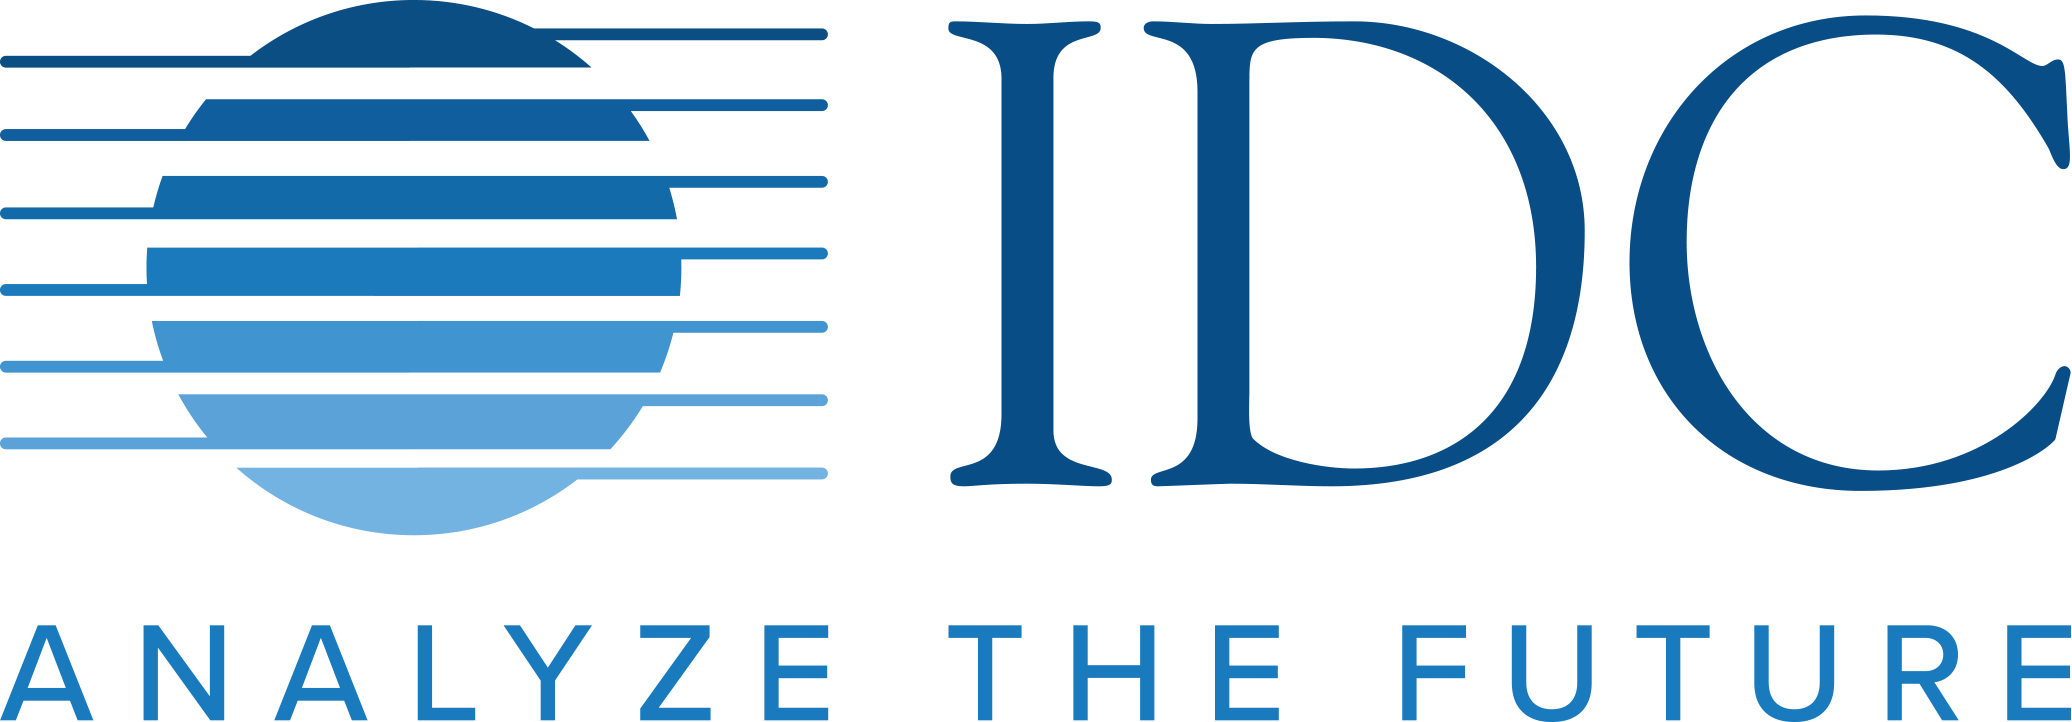 IDC Podcast About Intelligent Search Features Northern Light CEO David Seuss